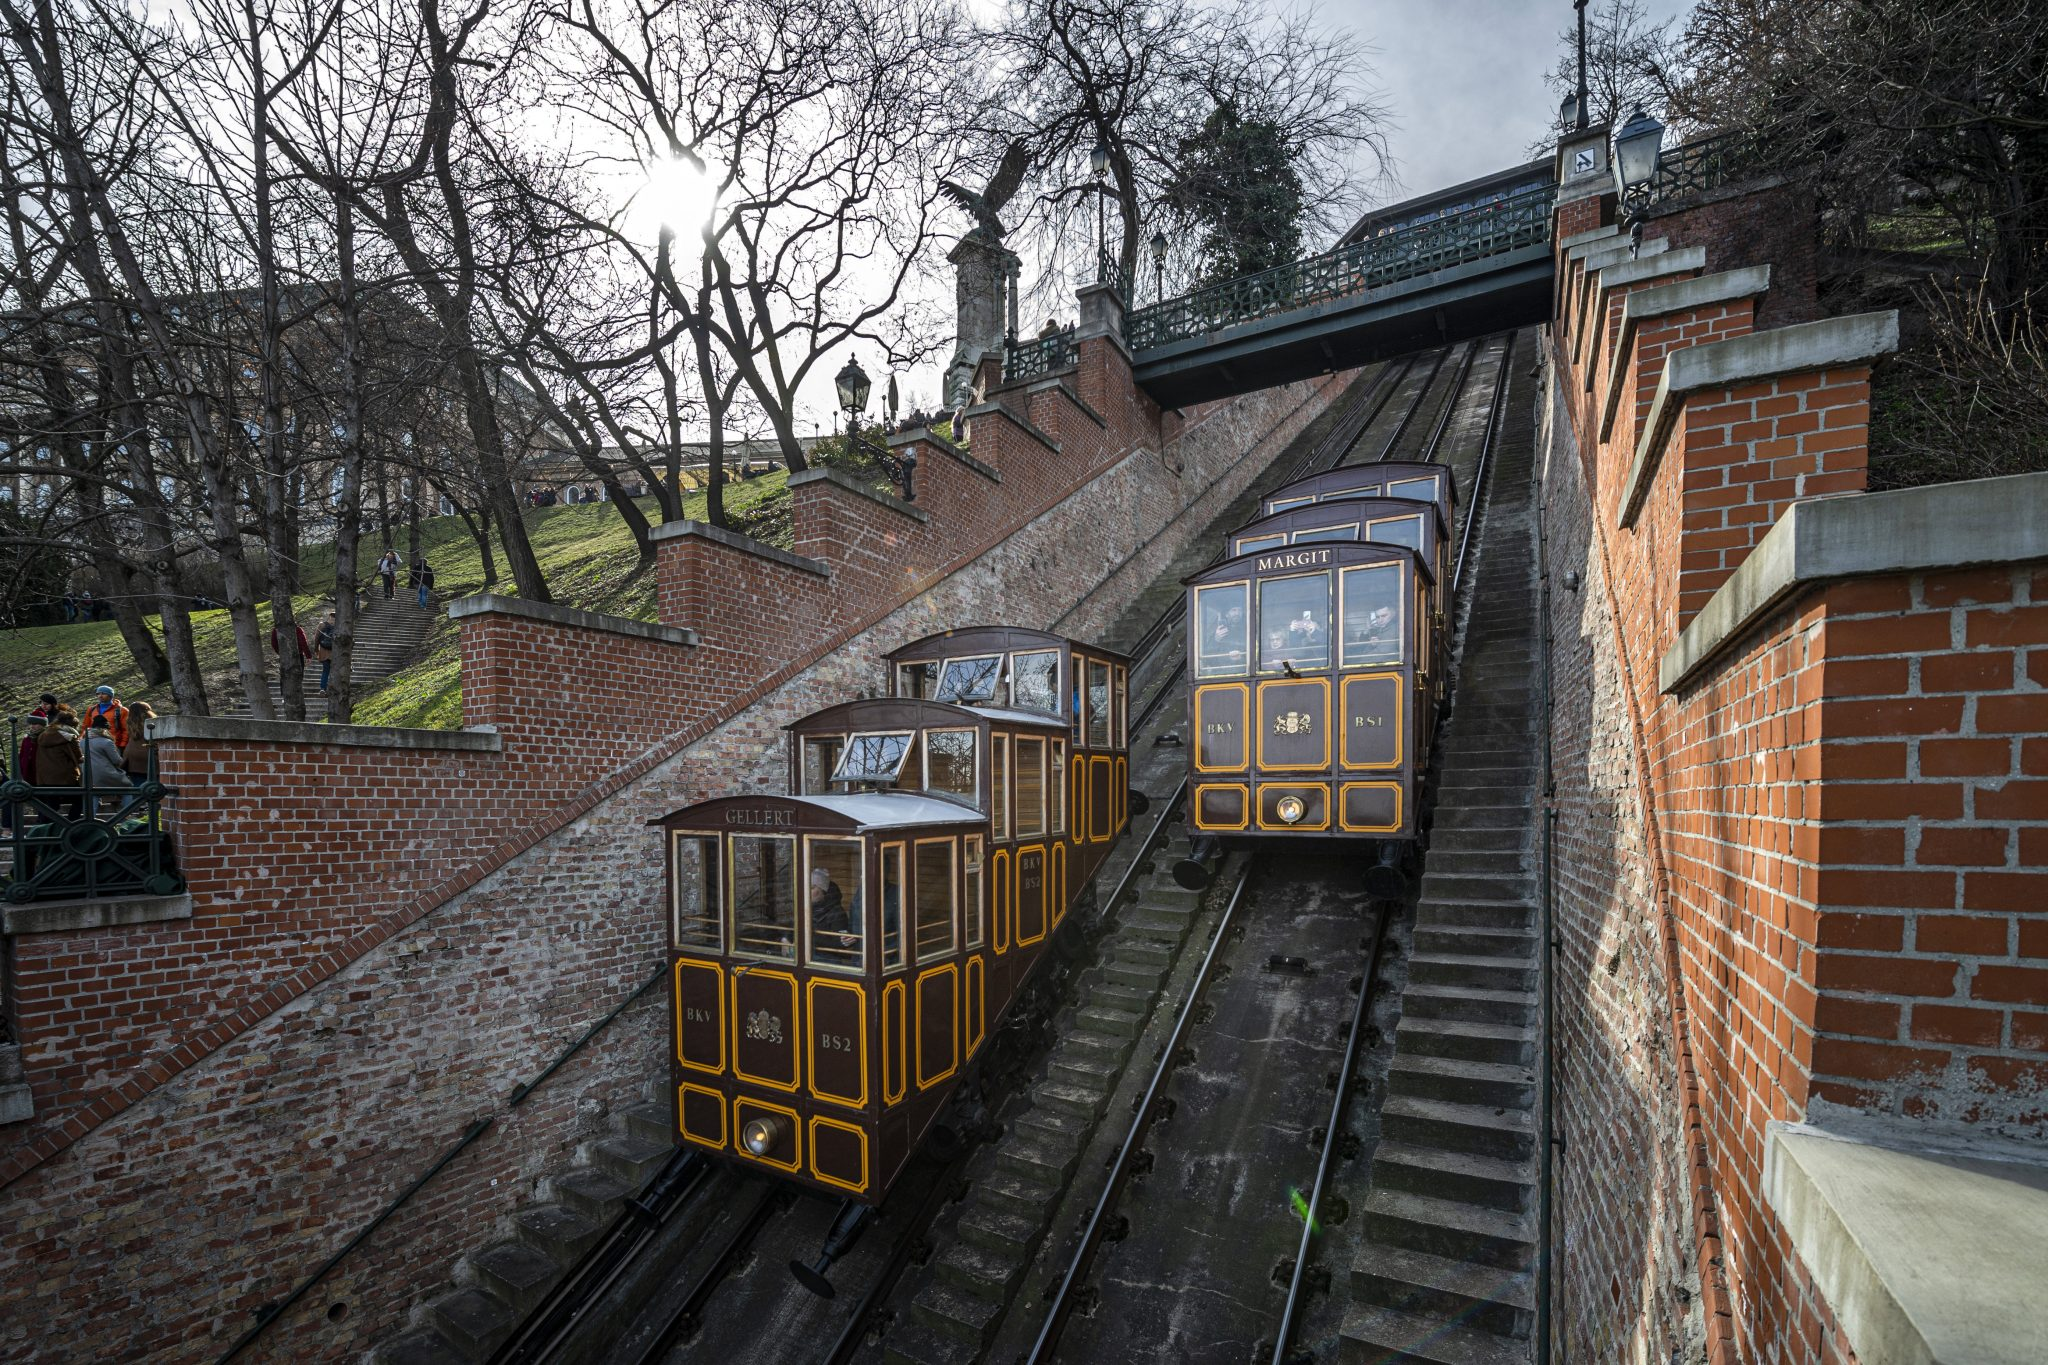 World Heritage Site Buda Castle Hill Funicular Built 150 Years Ago - Hungary Today